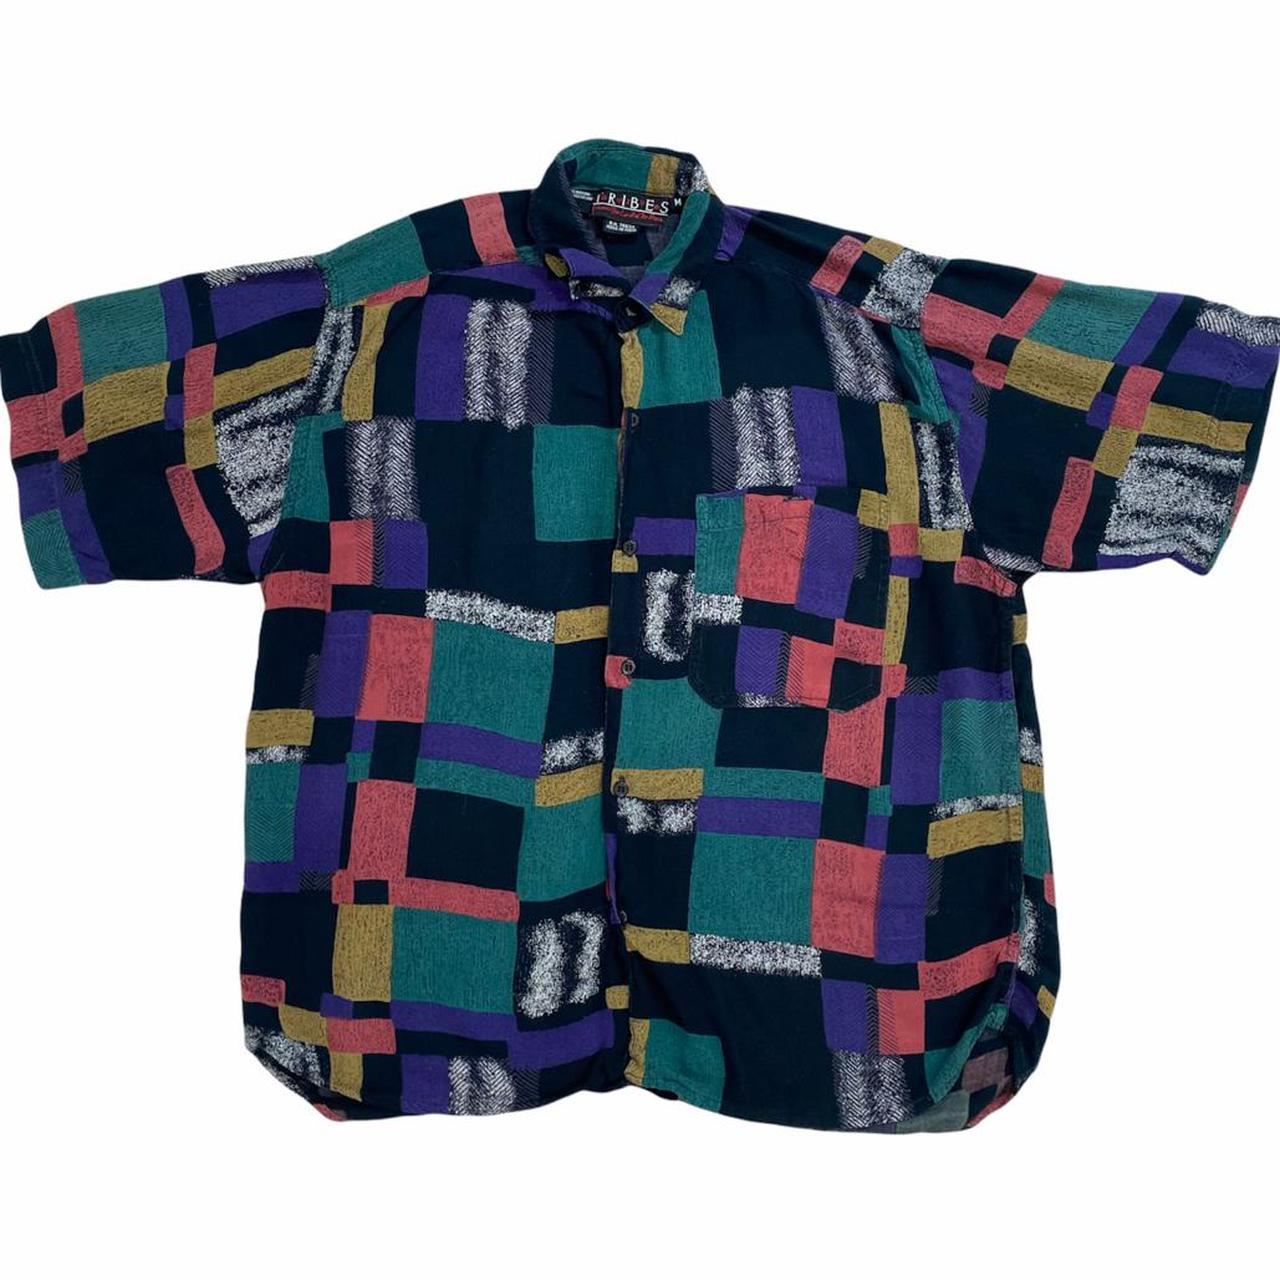 Product Image 1 - Vintage tribe S/S button up.